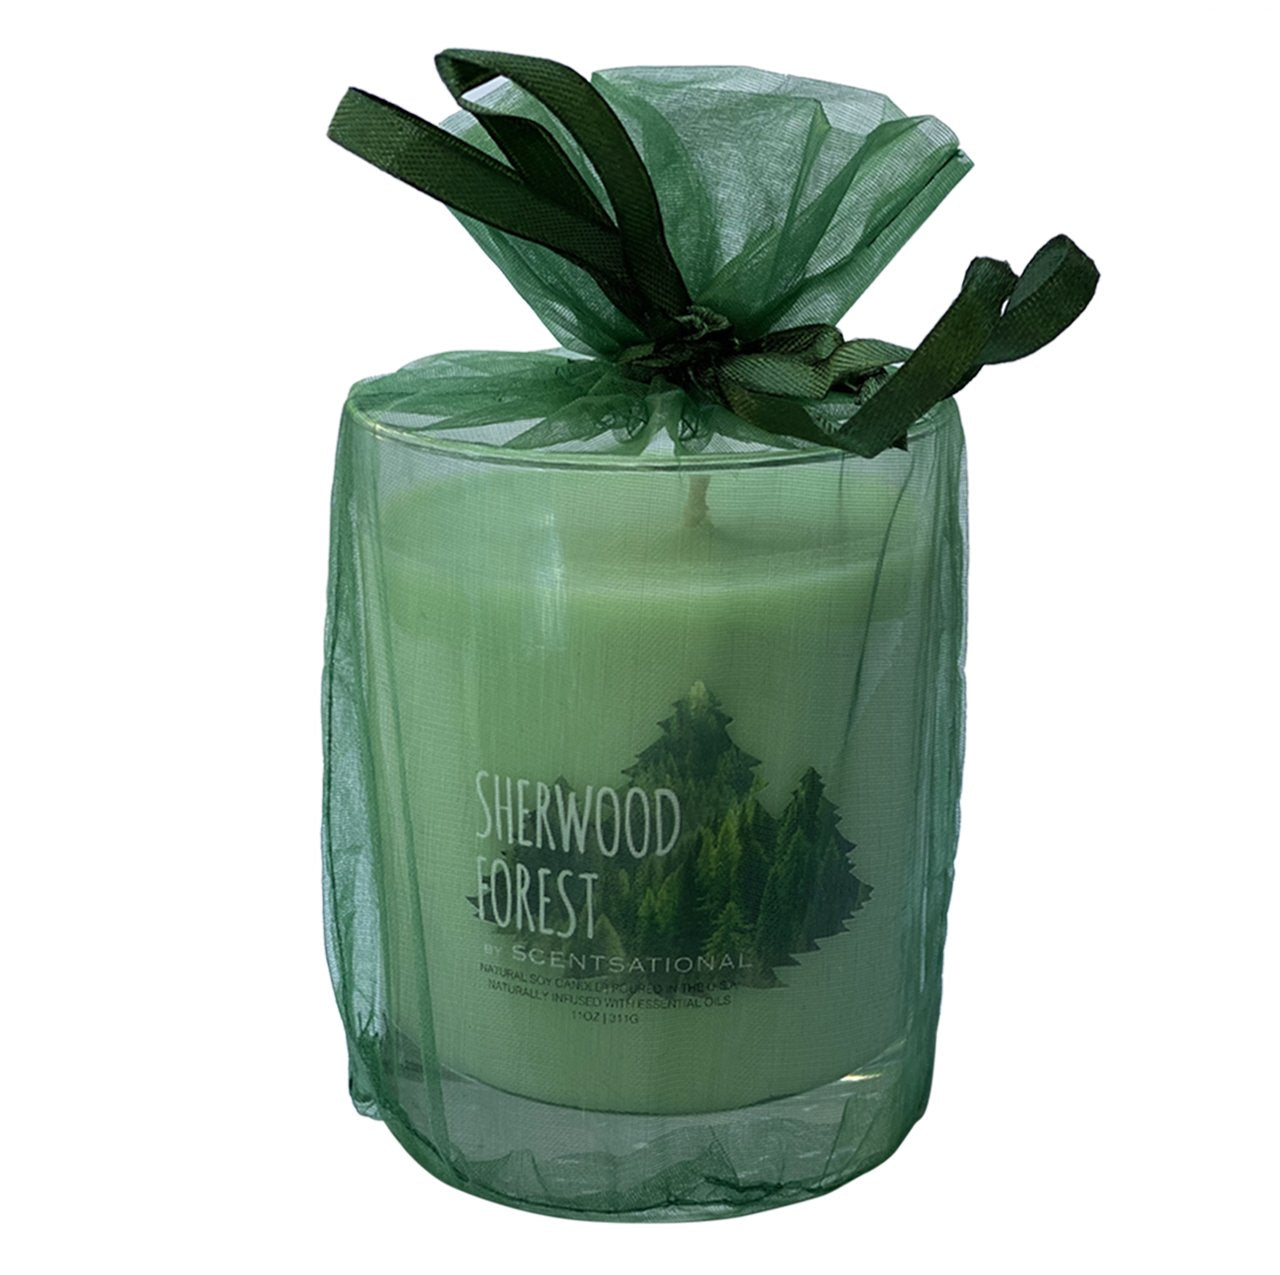 Scented Soy Candles PINE WOOD (11 oz) eliminates smoke, household, pet odors